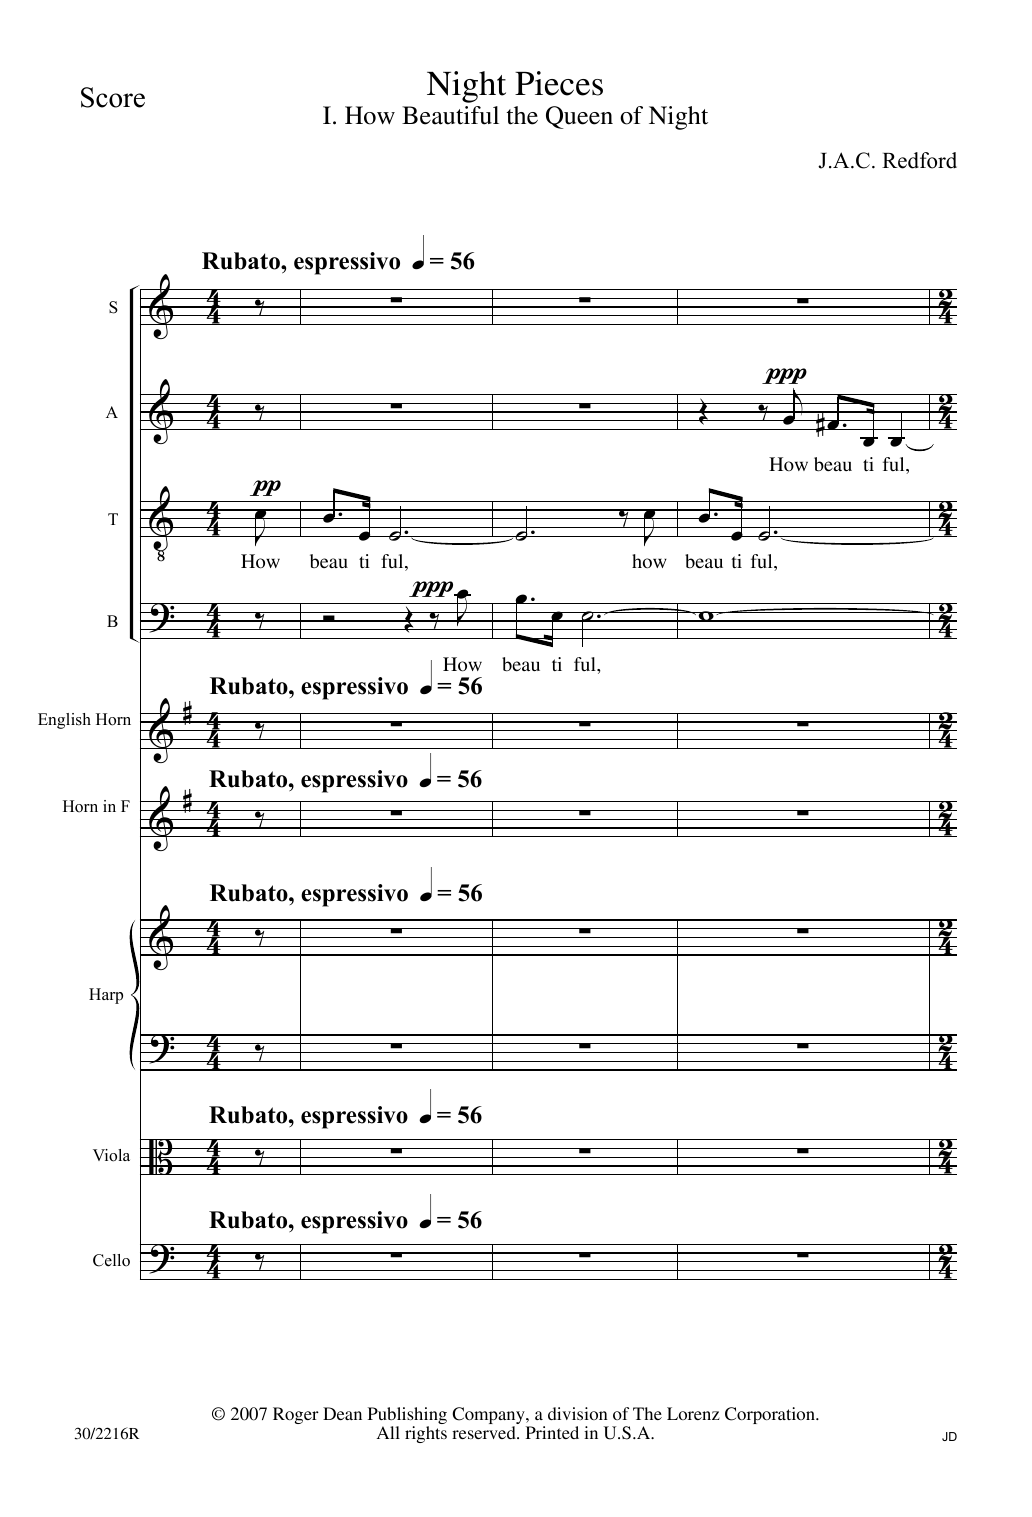 J.A.C. Redford Night Pieces - Score sheet music notes and chords. Download Printable PDF.